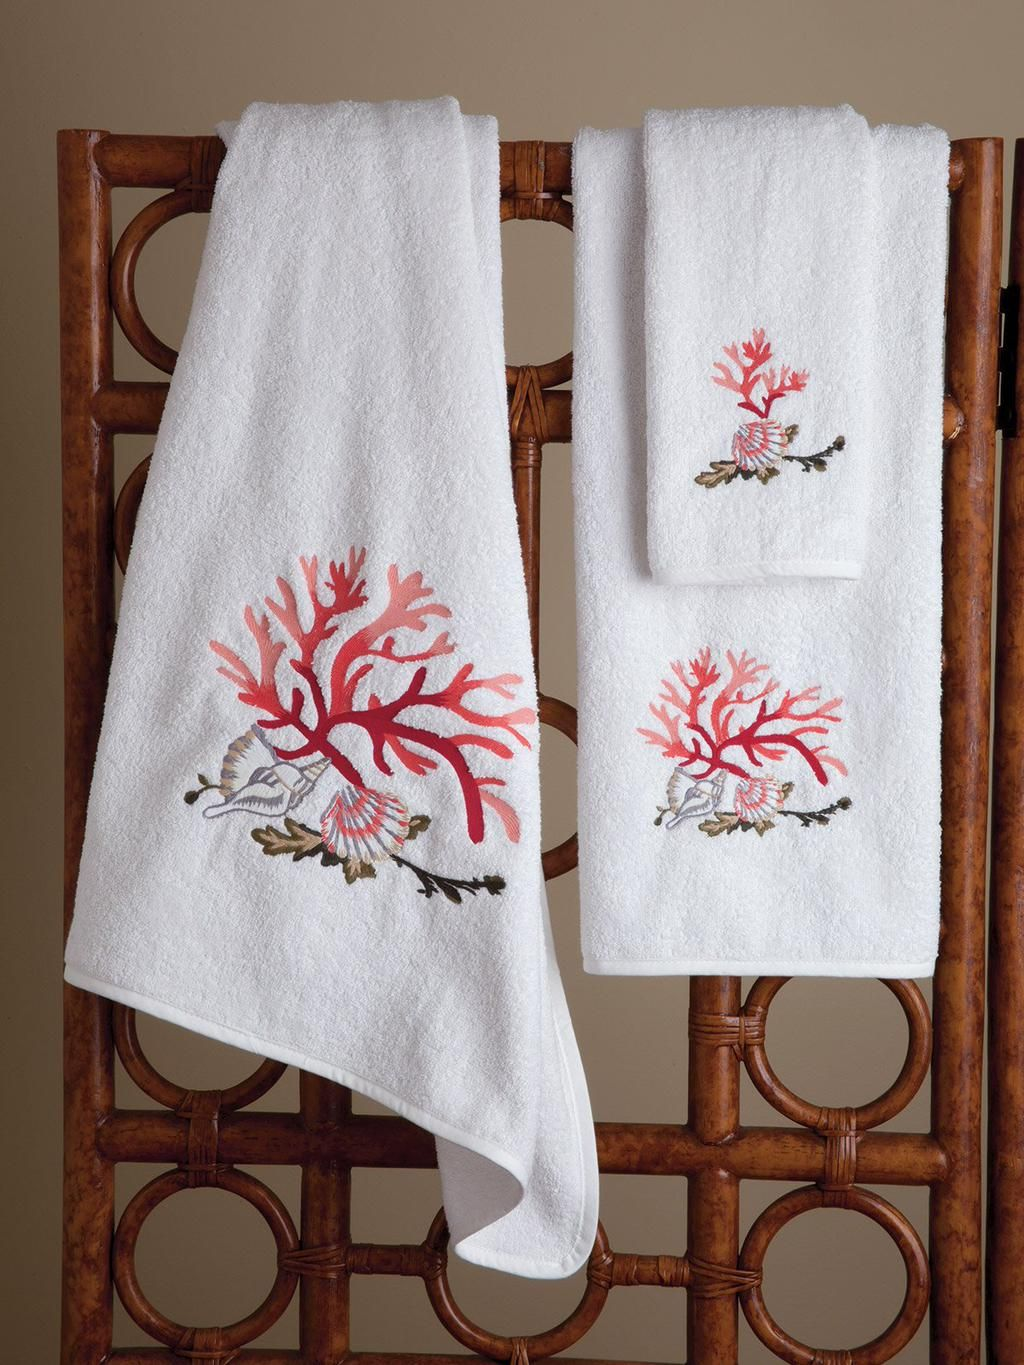 http://schweitzerlinen.com/seascape.html Embroidered coral and seashells bring nature's wonders. #luxury